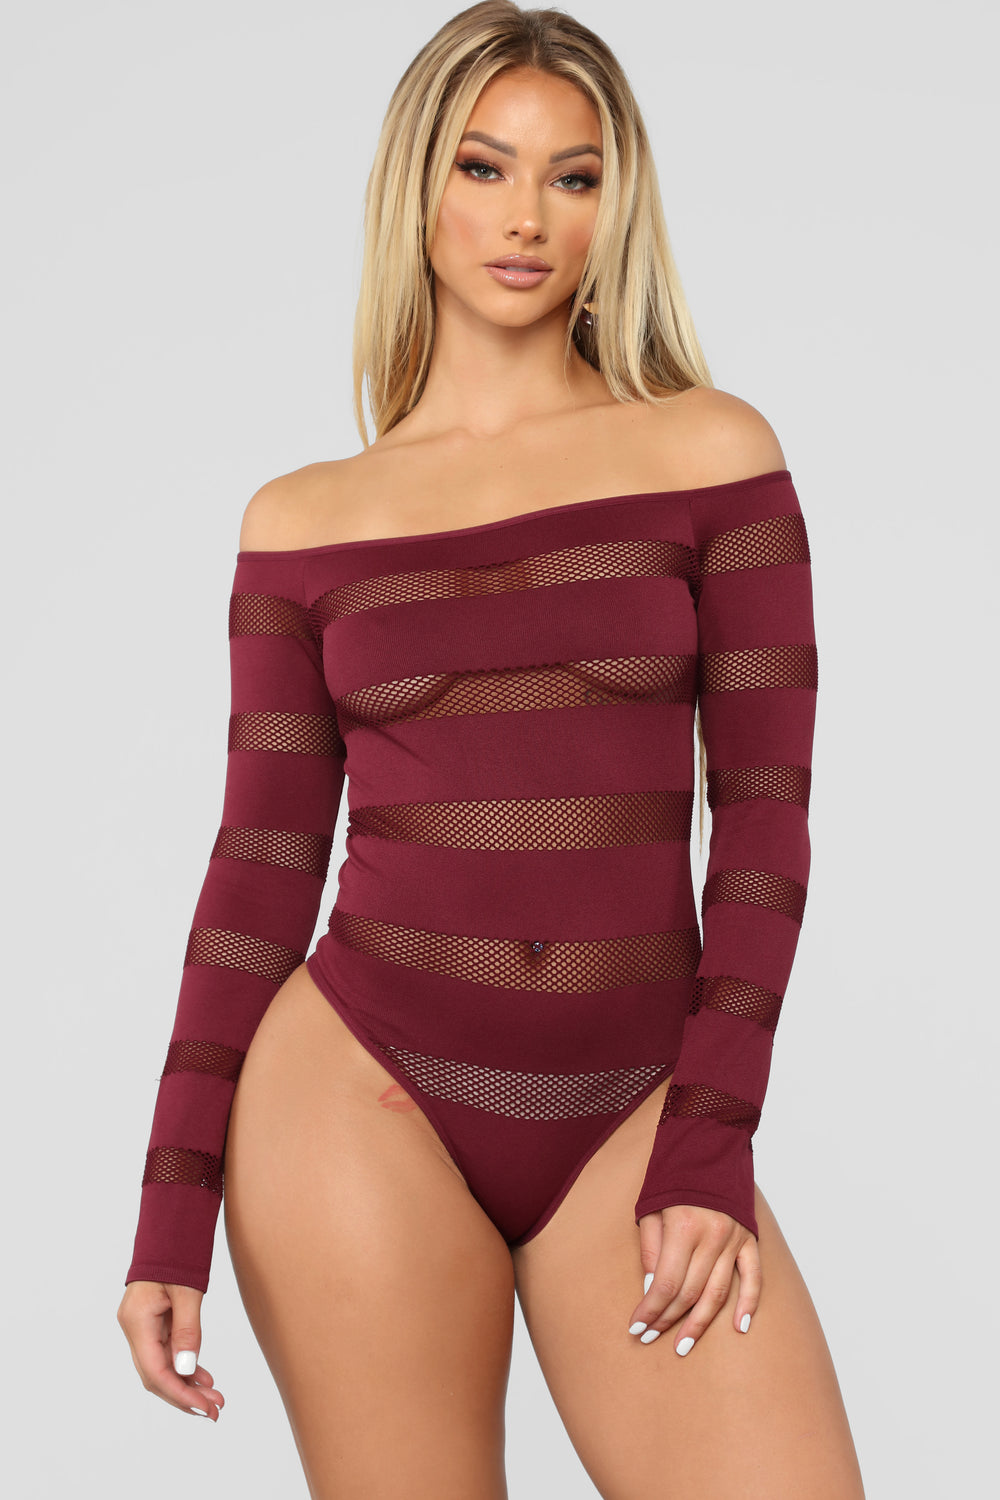 On The Fence Fishnet Bodysuit II - Wine